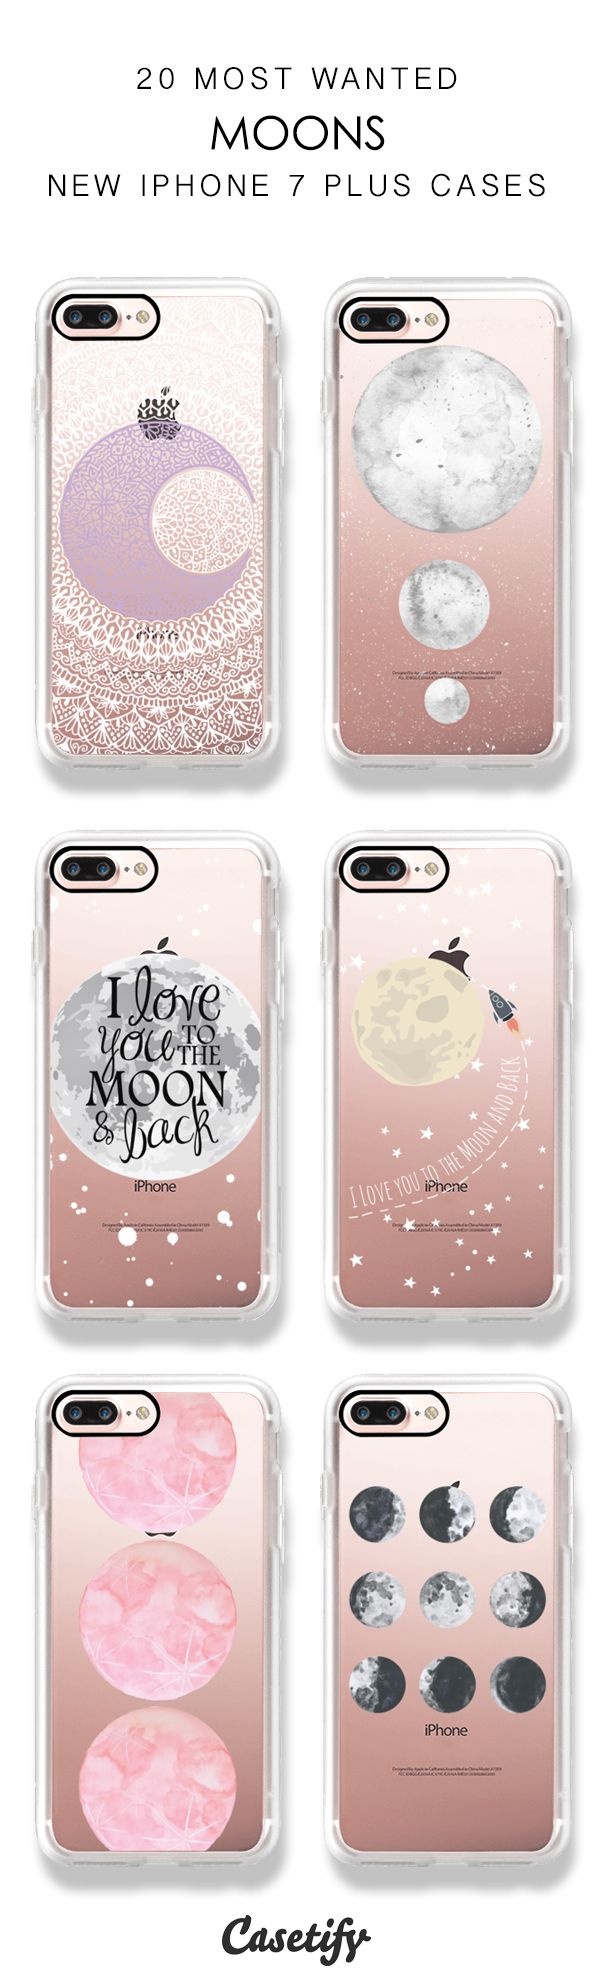 Zoella iphone wallpaper tumblr - 20 Most Wanted Iphone 7 Iphone 7 Plus Phone Cases